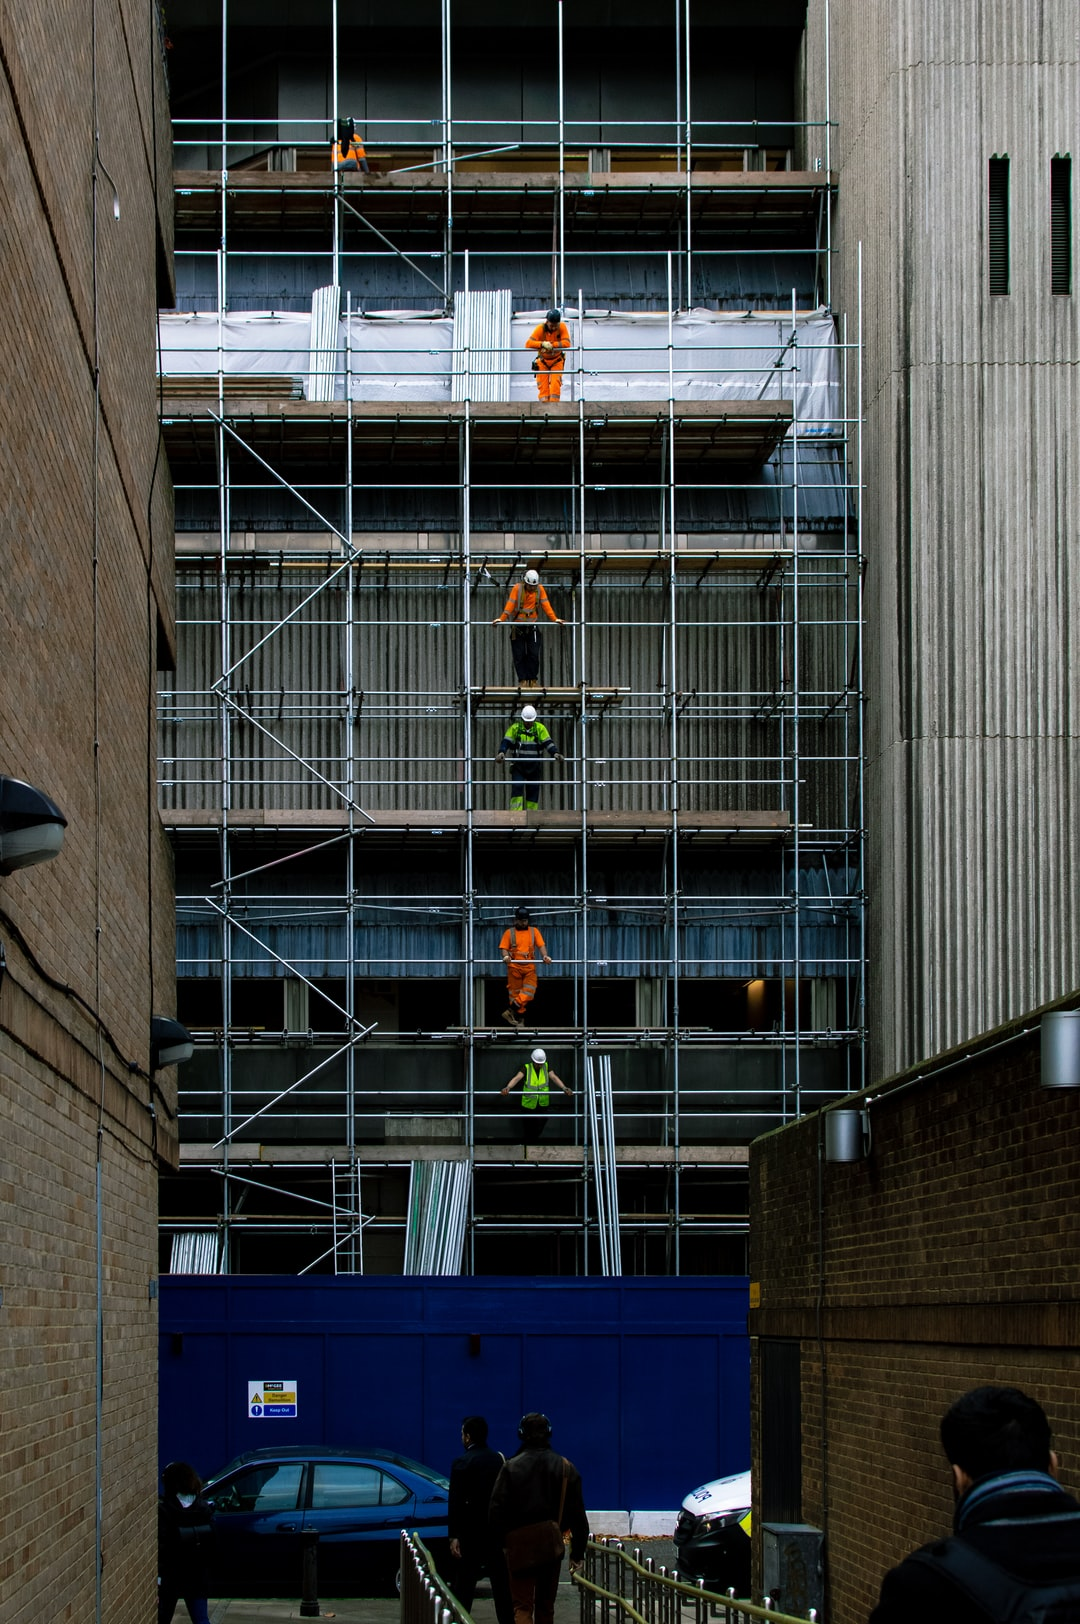 I noticed this amazing lineup of builders on my way into work recently. I fell in love with the arrangement of them and loved the contrast of their hi-vis equipment against the background.